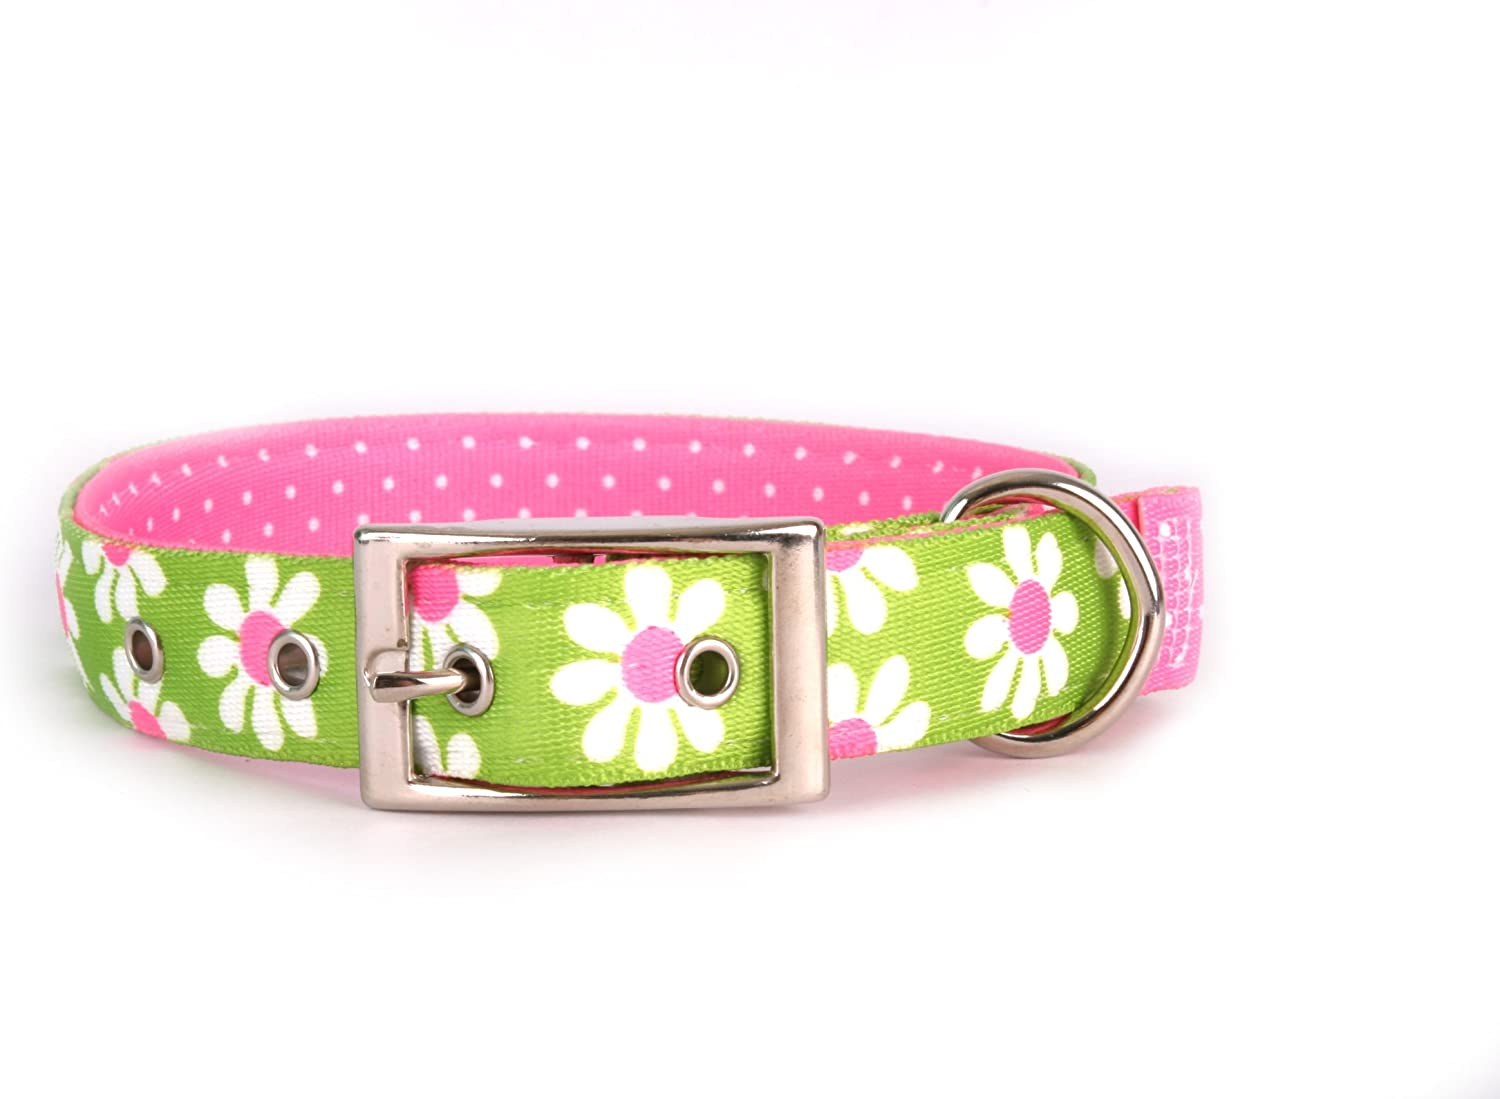 Dog Puppy Design Collar Up Country Choose Size Daisy Made In USA